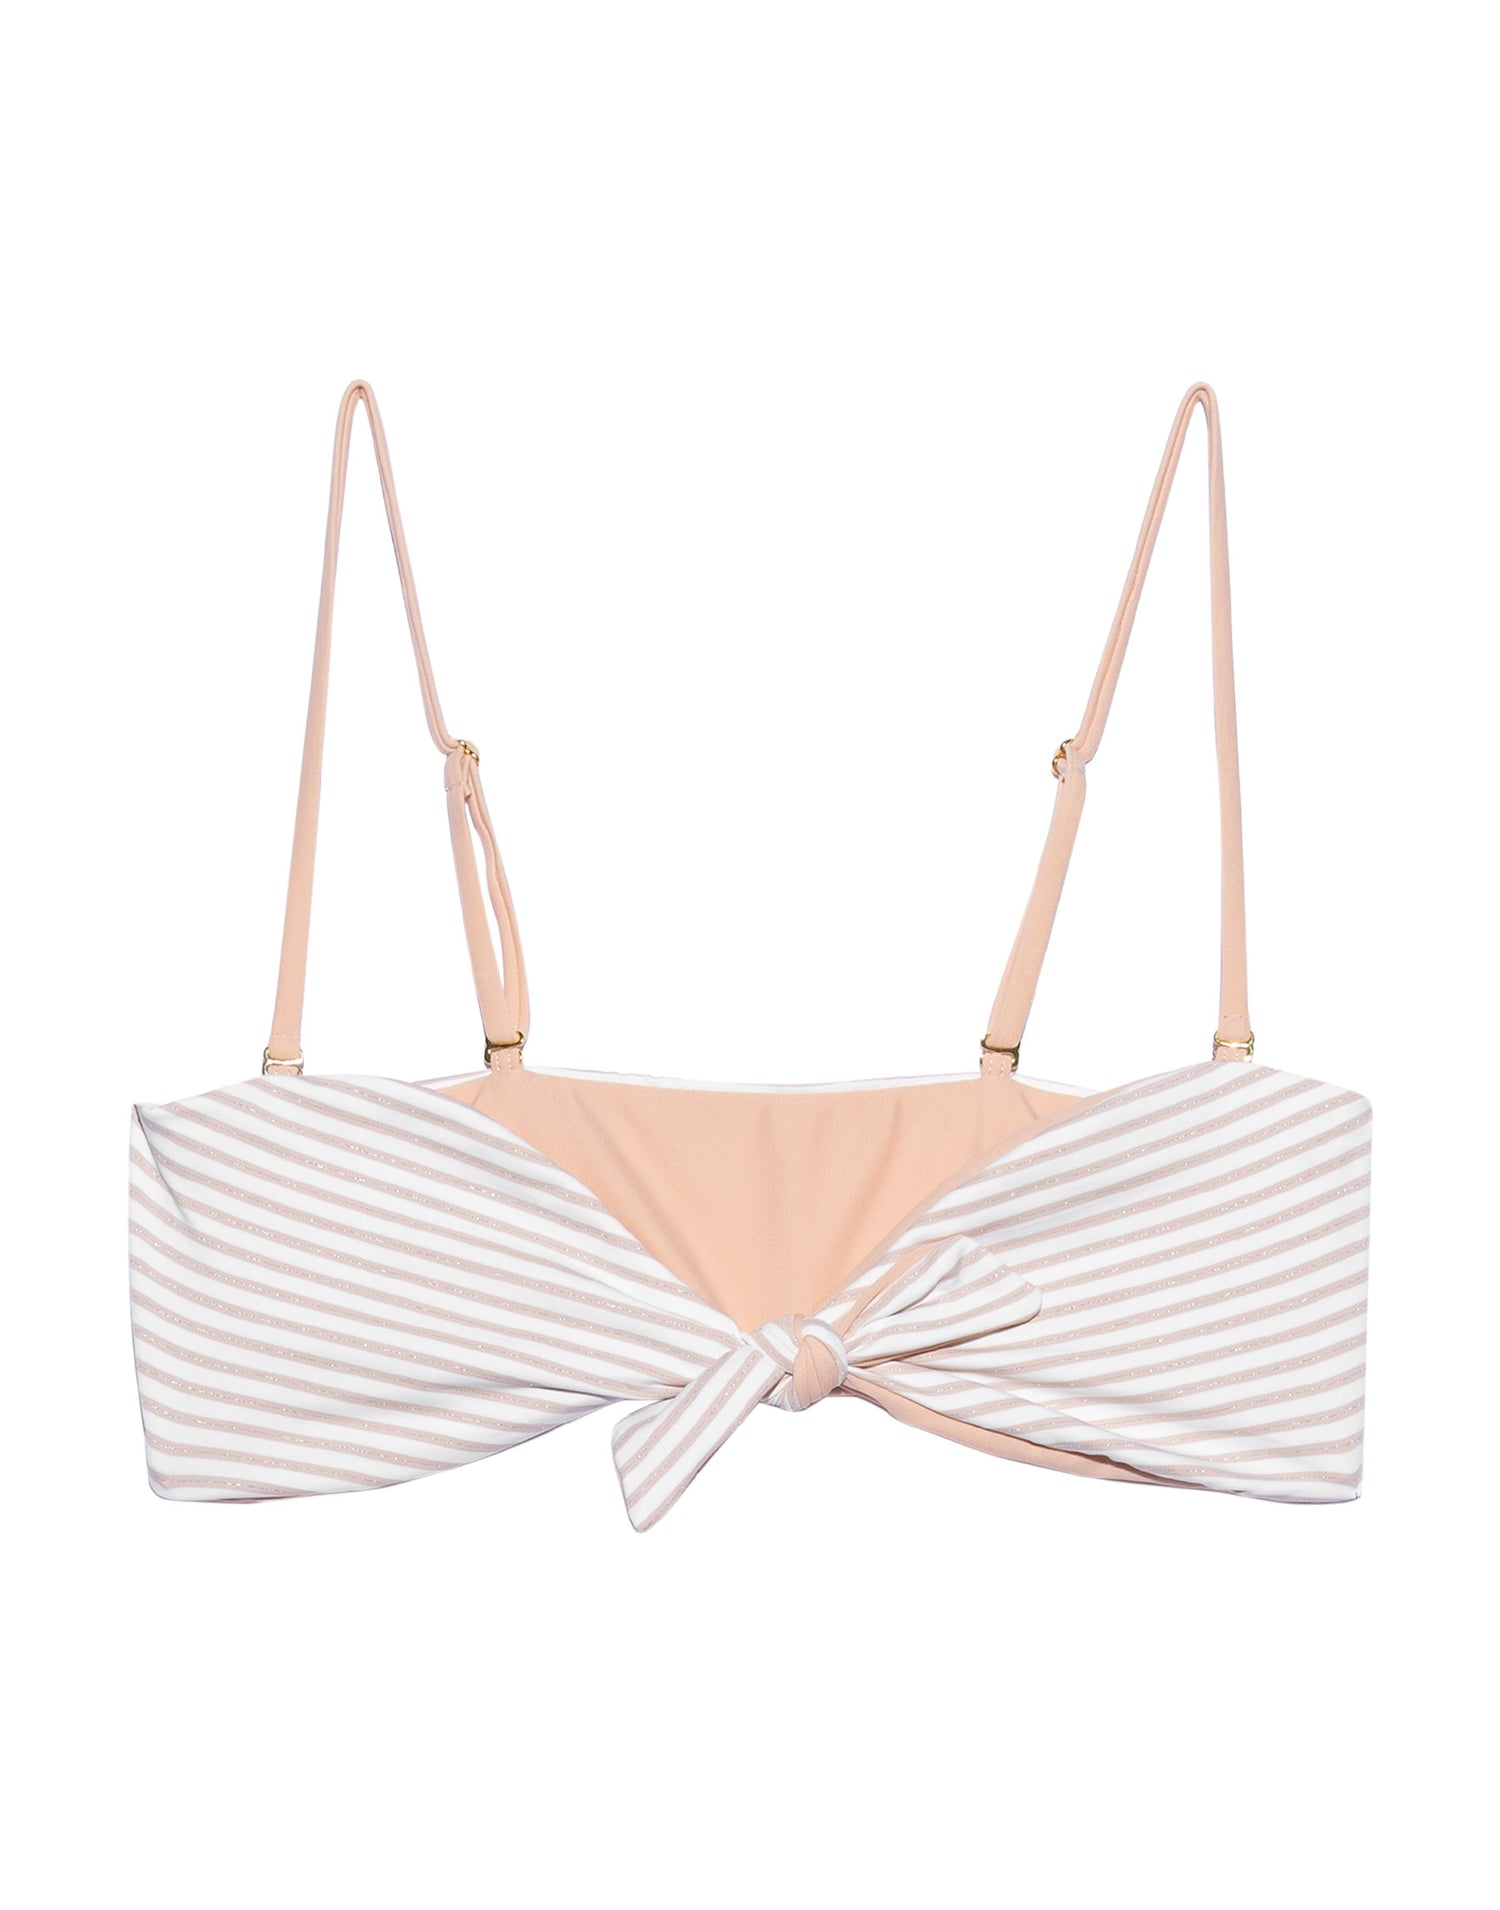 Layla Bandeau Bikini Top in Blush Stripe with Straps - product view